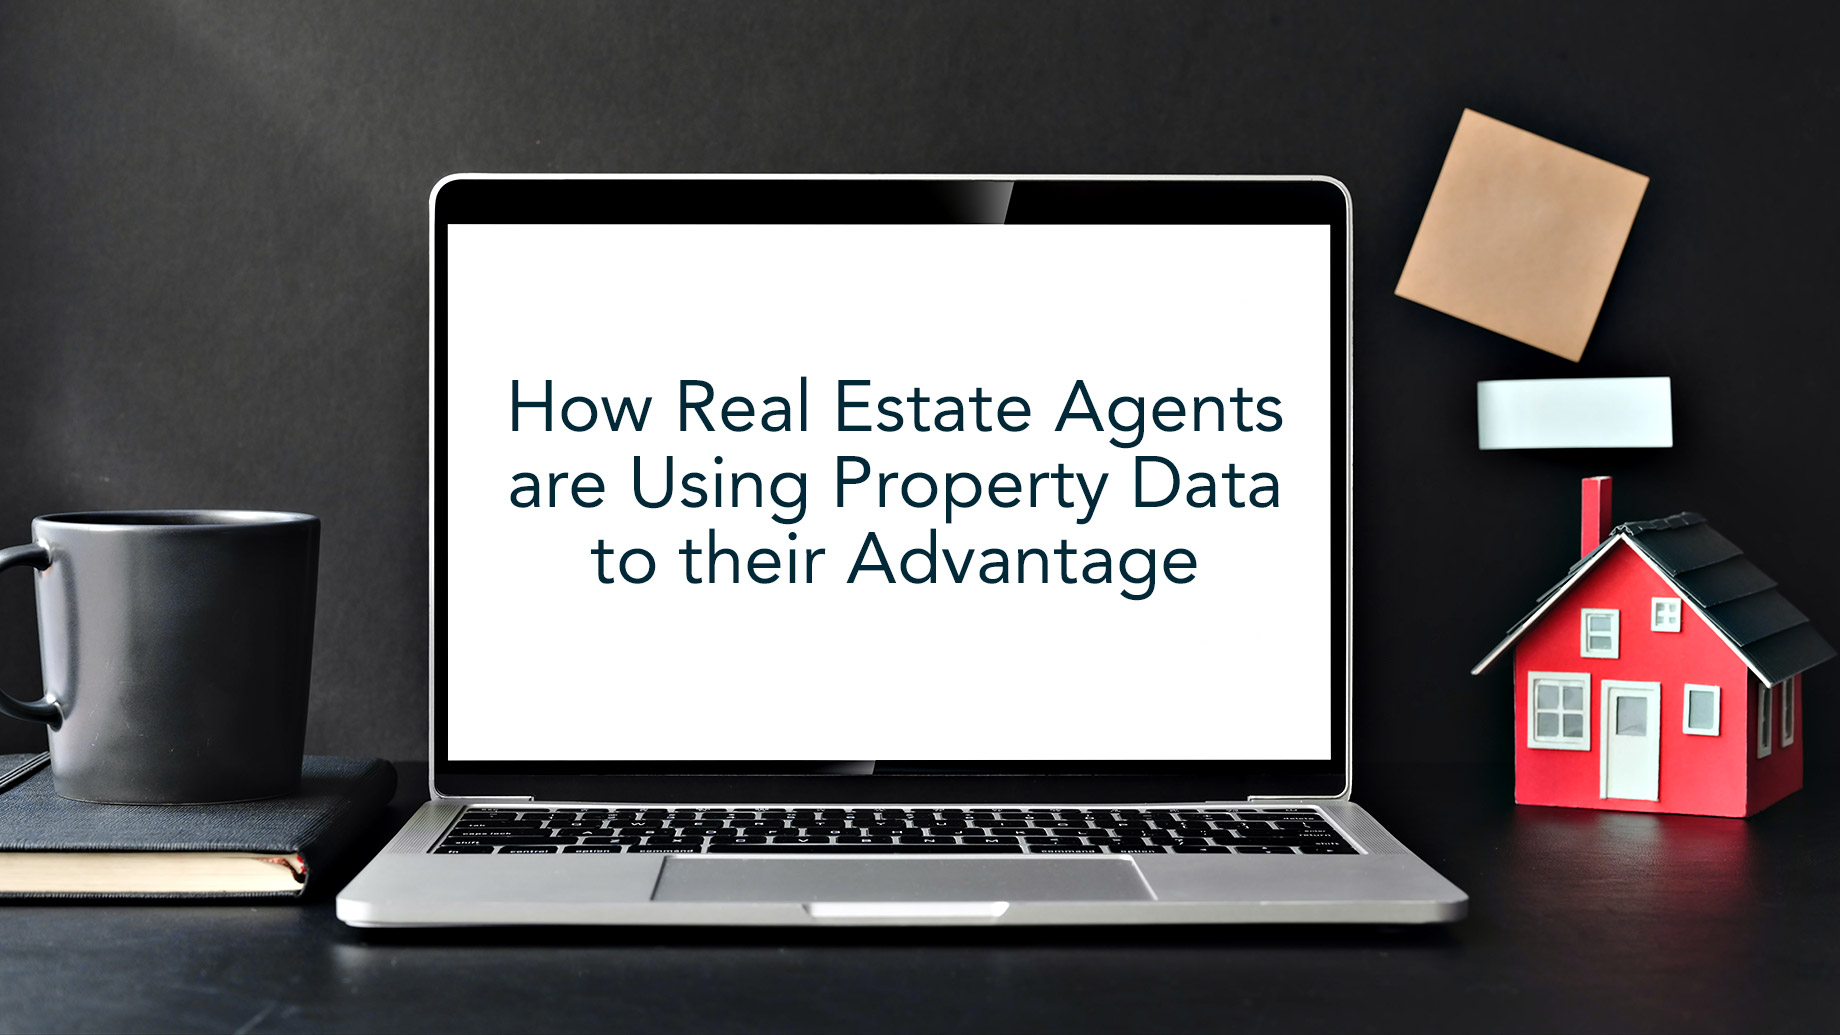 How Real Estate Agents are Using Property Data to their Advantage